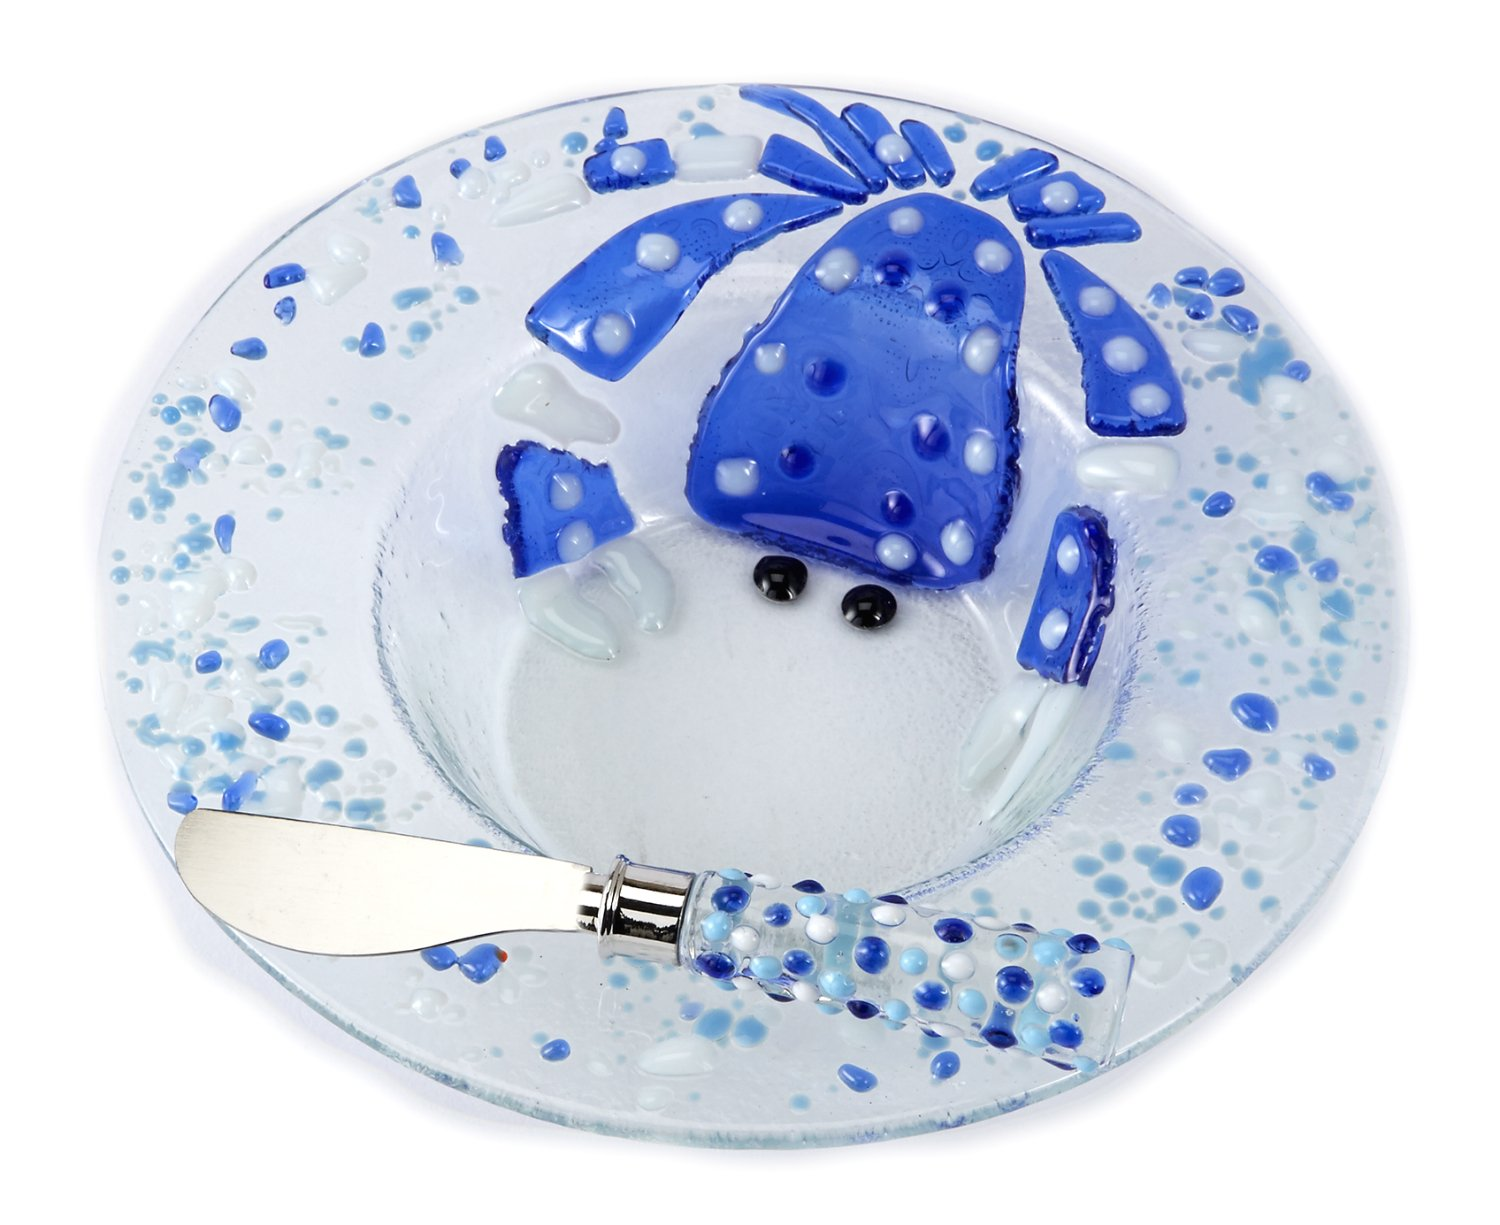 Christmas Tablescape Décor - Mud Pie blue crab glass dip cup and spreader set